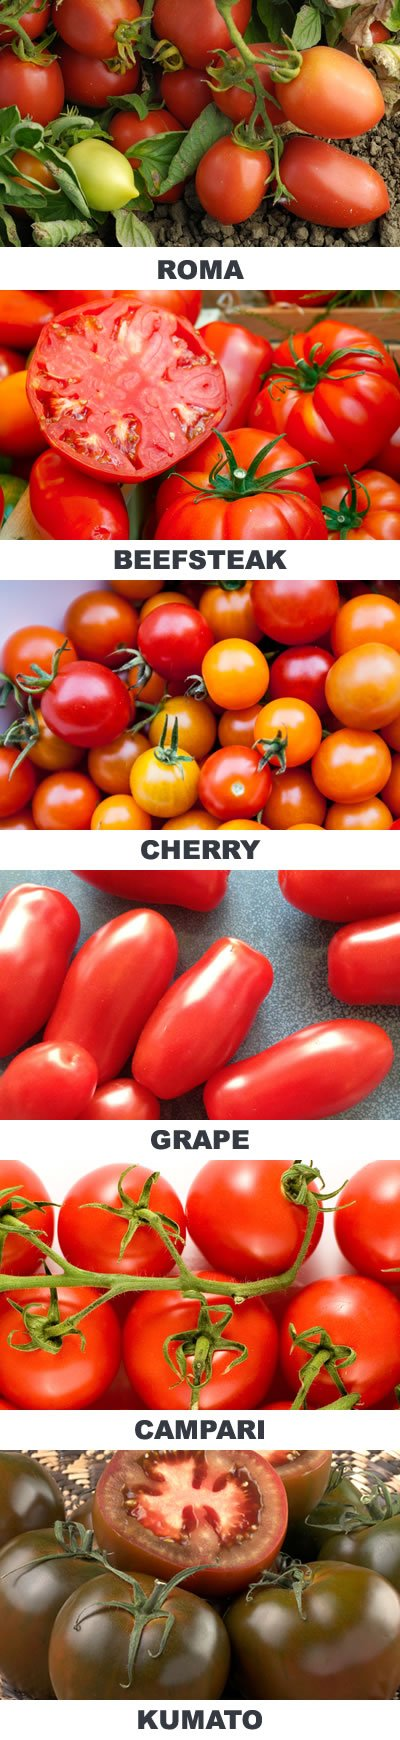 Guide to Tomato Varieties